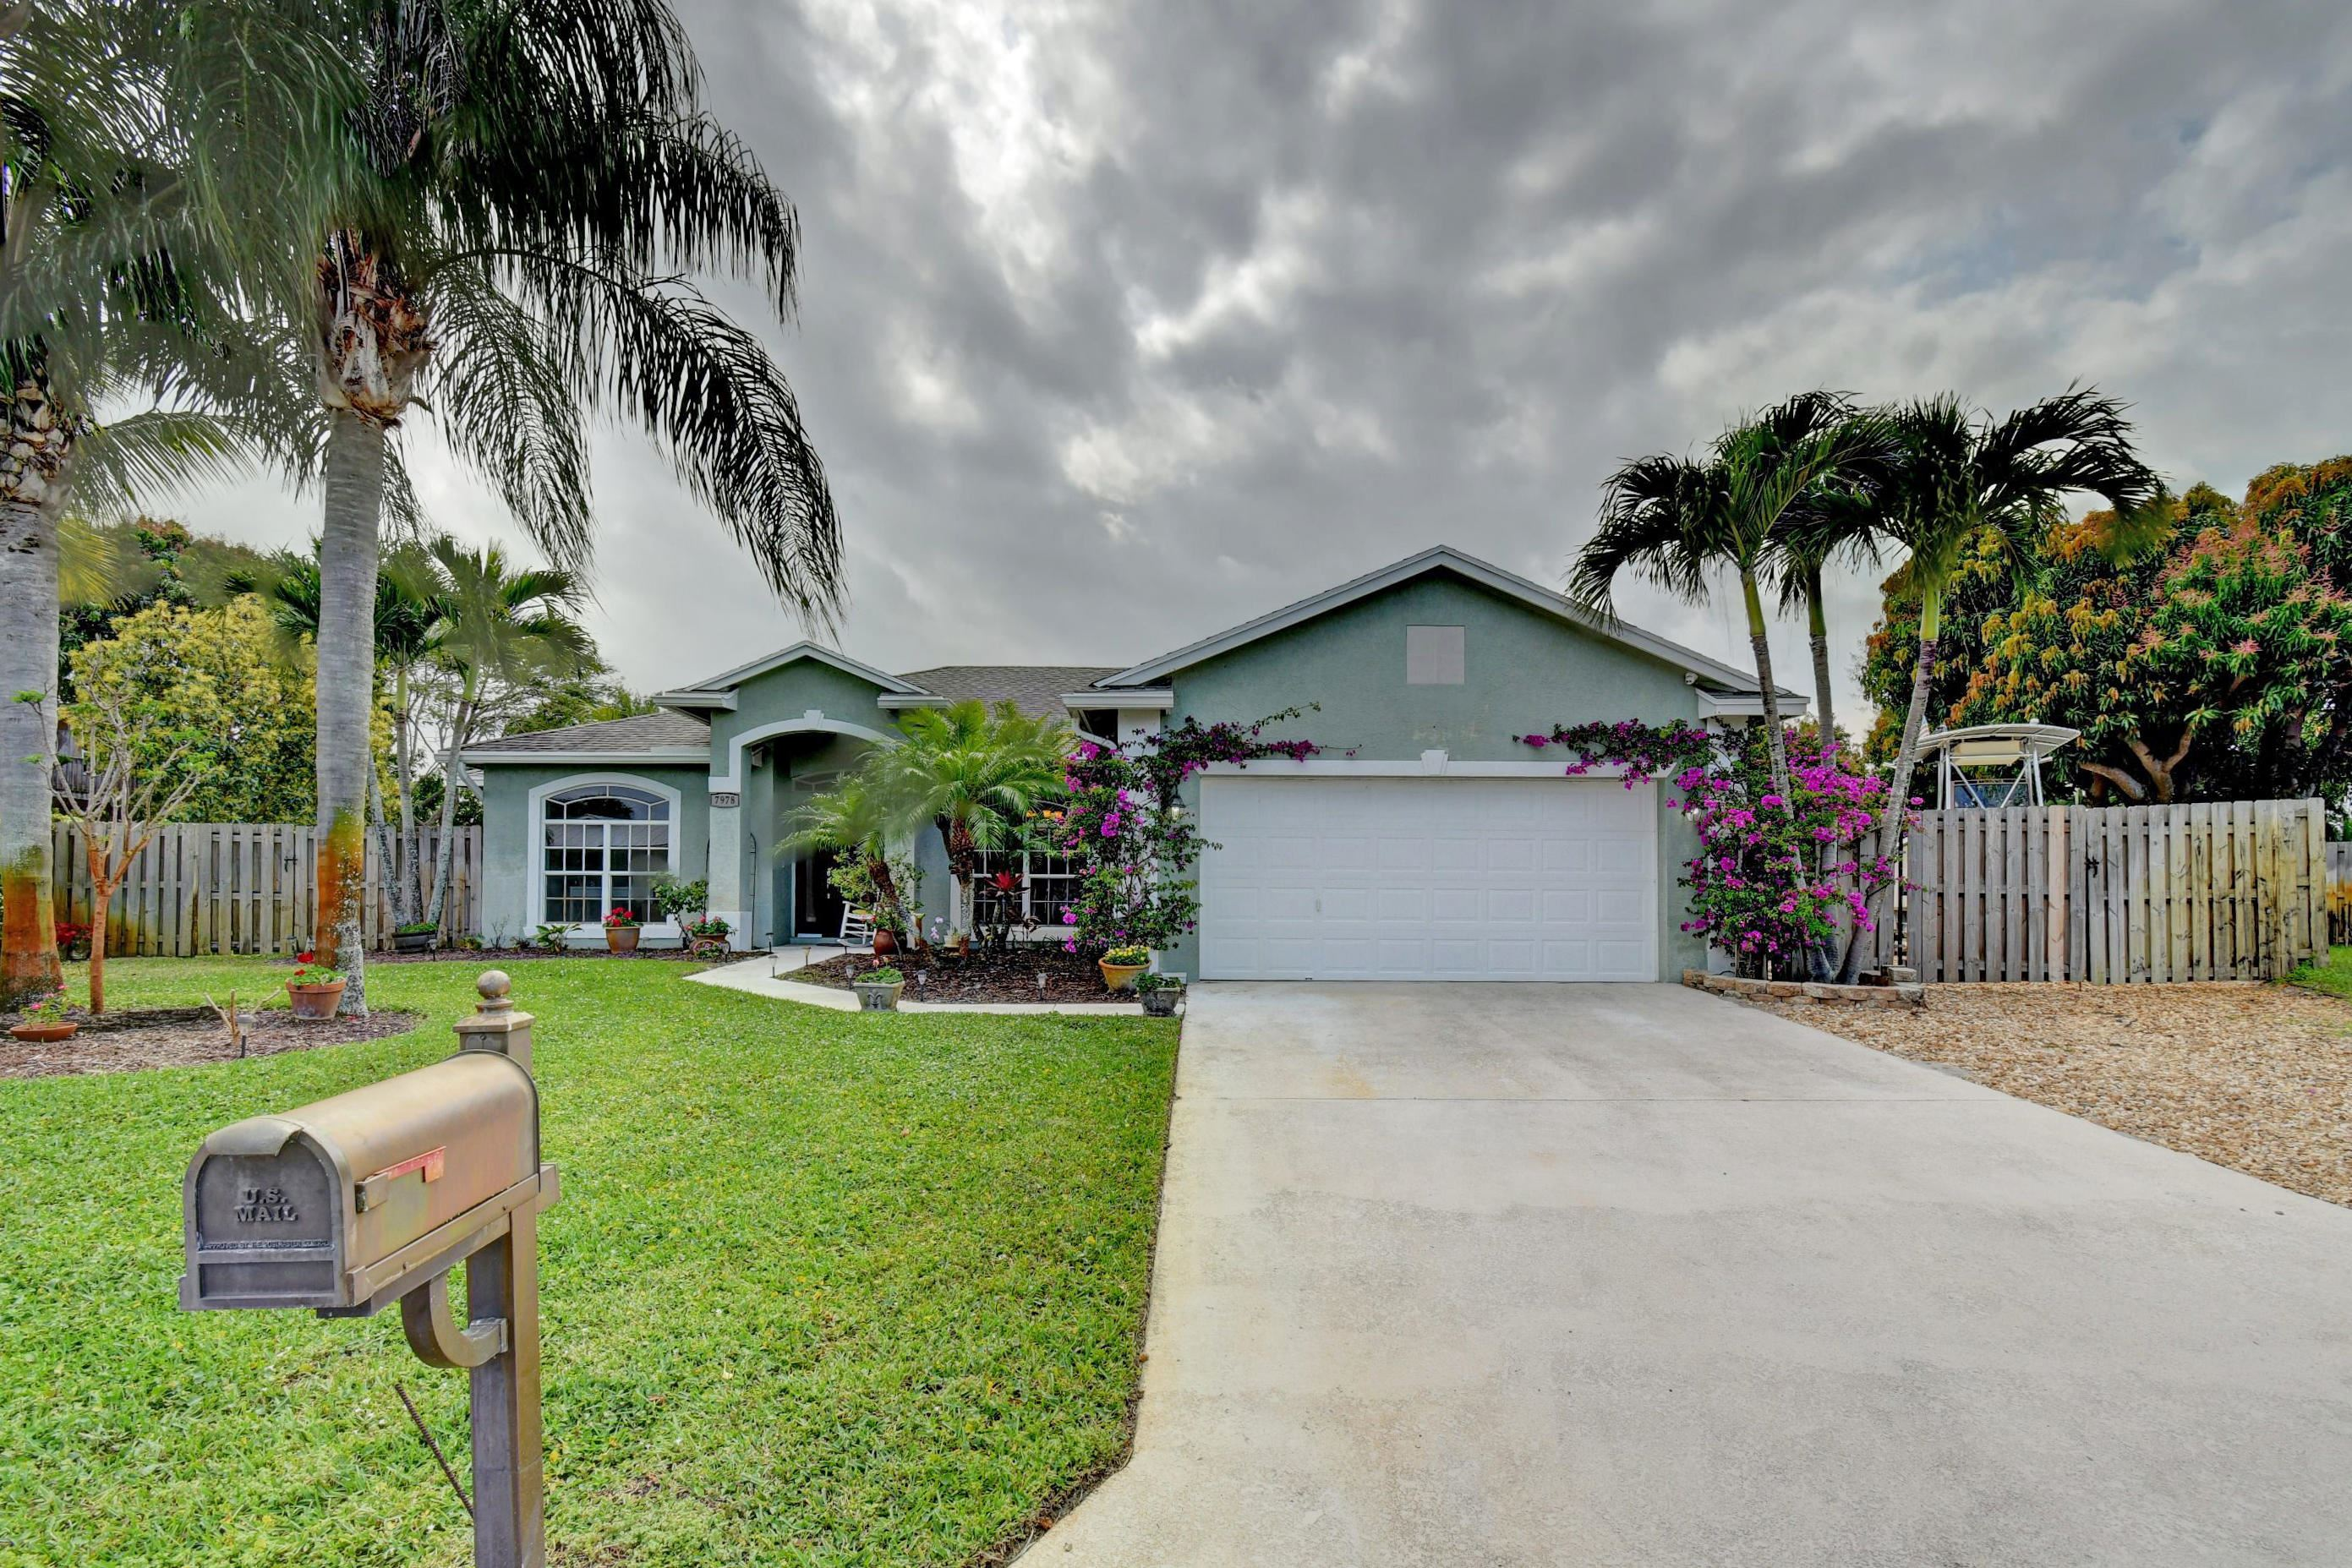 7978 SE Orchard Terrace, Hobe Sound, Florida